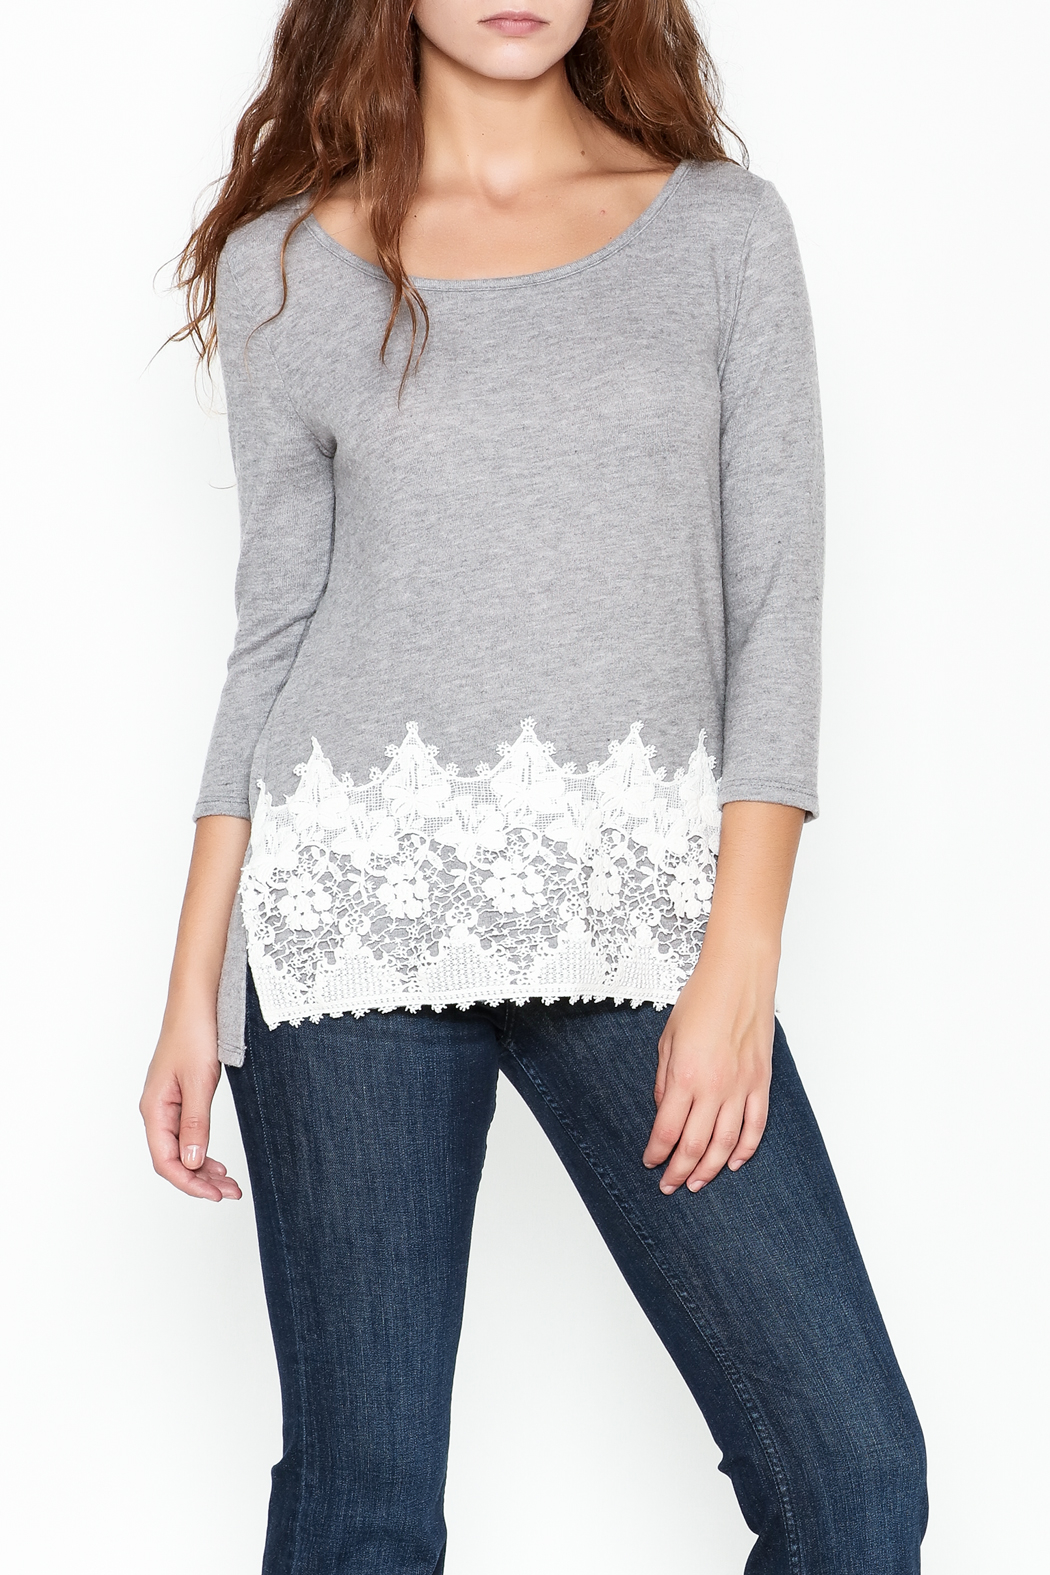 Peach Love California Lucy Lace Knit Top - Main Image